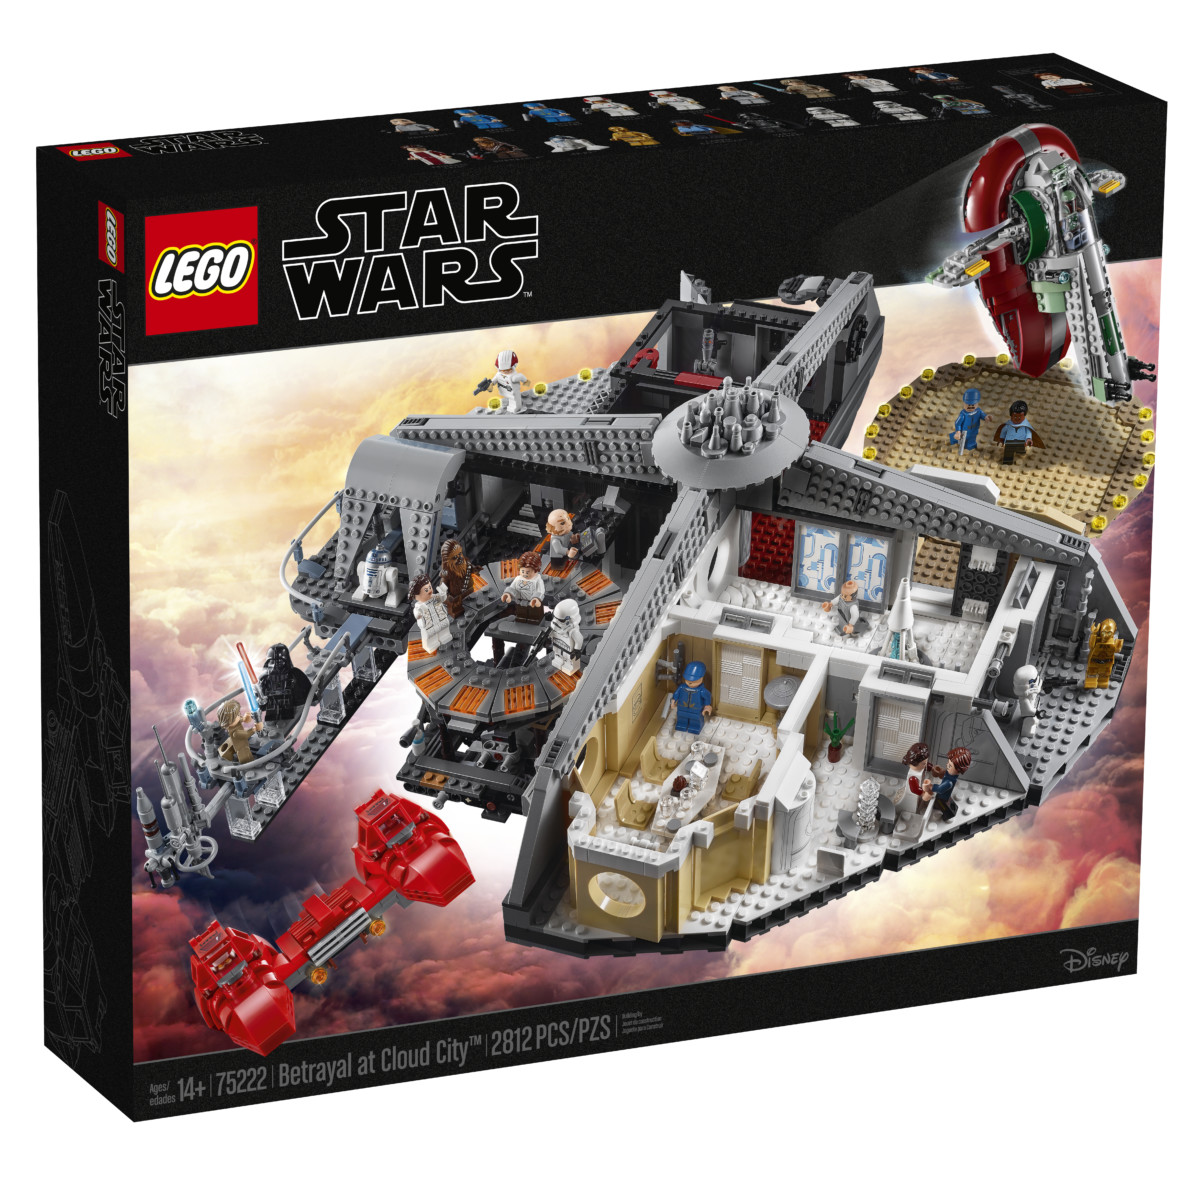 75222 box1 v39 - LEGO's Star Wars Betrayal at Cloud City is a brilliant recreation of the Empire Strikes Back